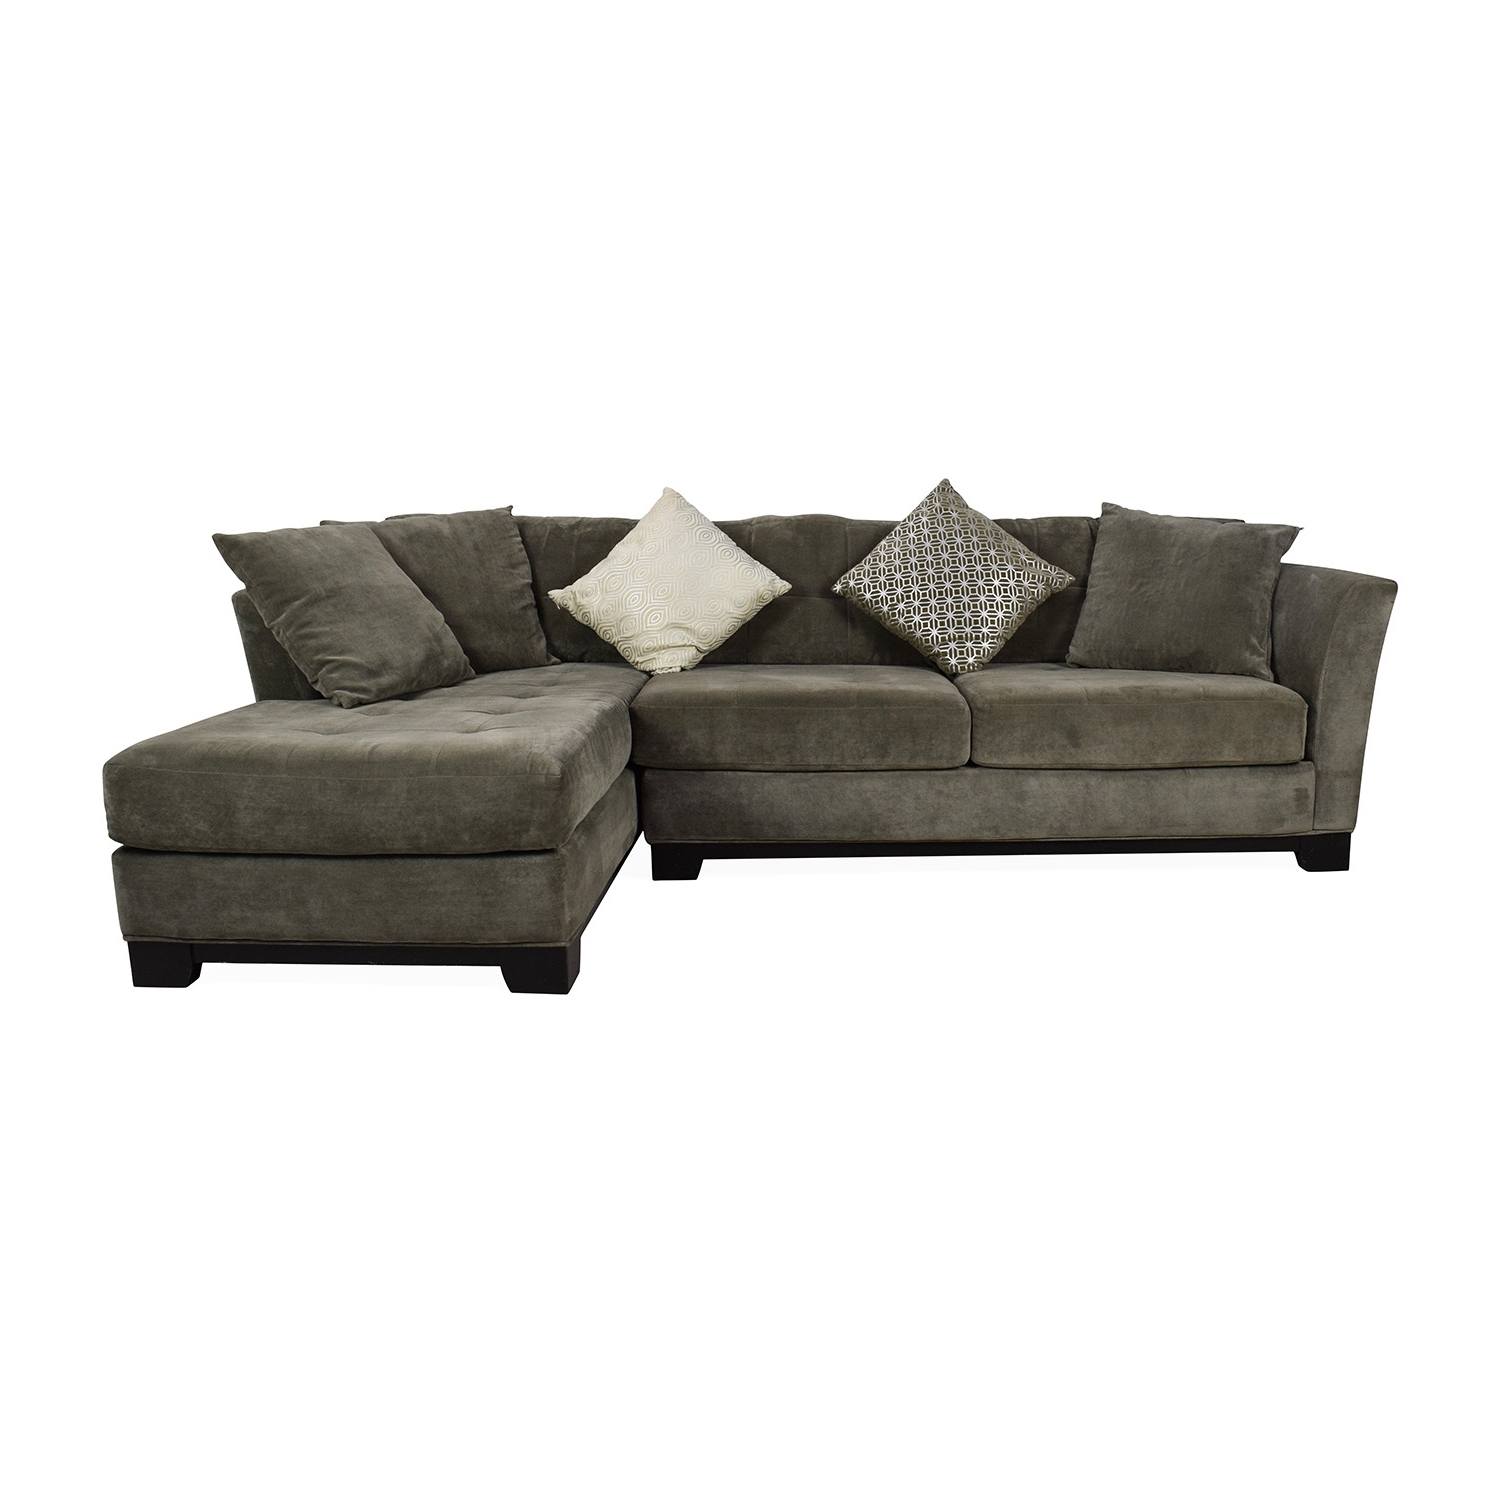 [%50% Off – Macy's Macy's Gray Sectional Couch With Chaise / Sofas Inside 2017 Gray Couches With Chaise|Gray Couches With Chaise Throughout Most Current 50% Off – Macy's Macy's Gray Sectional Couch With Chaise / Sofas|Preferred Gray Couches With Chaise Regarding 50% Off – Macy's Macy's Gray Sectional Couch With Chaise / Sofas|Most Current 50% Off – Macy's Macy's Gray Sectional Couch With Chaise / Sofas Intended For Gray Couches With Chaise%] (View 9 of 15)